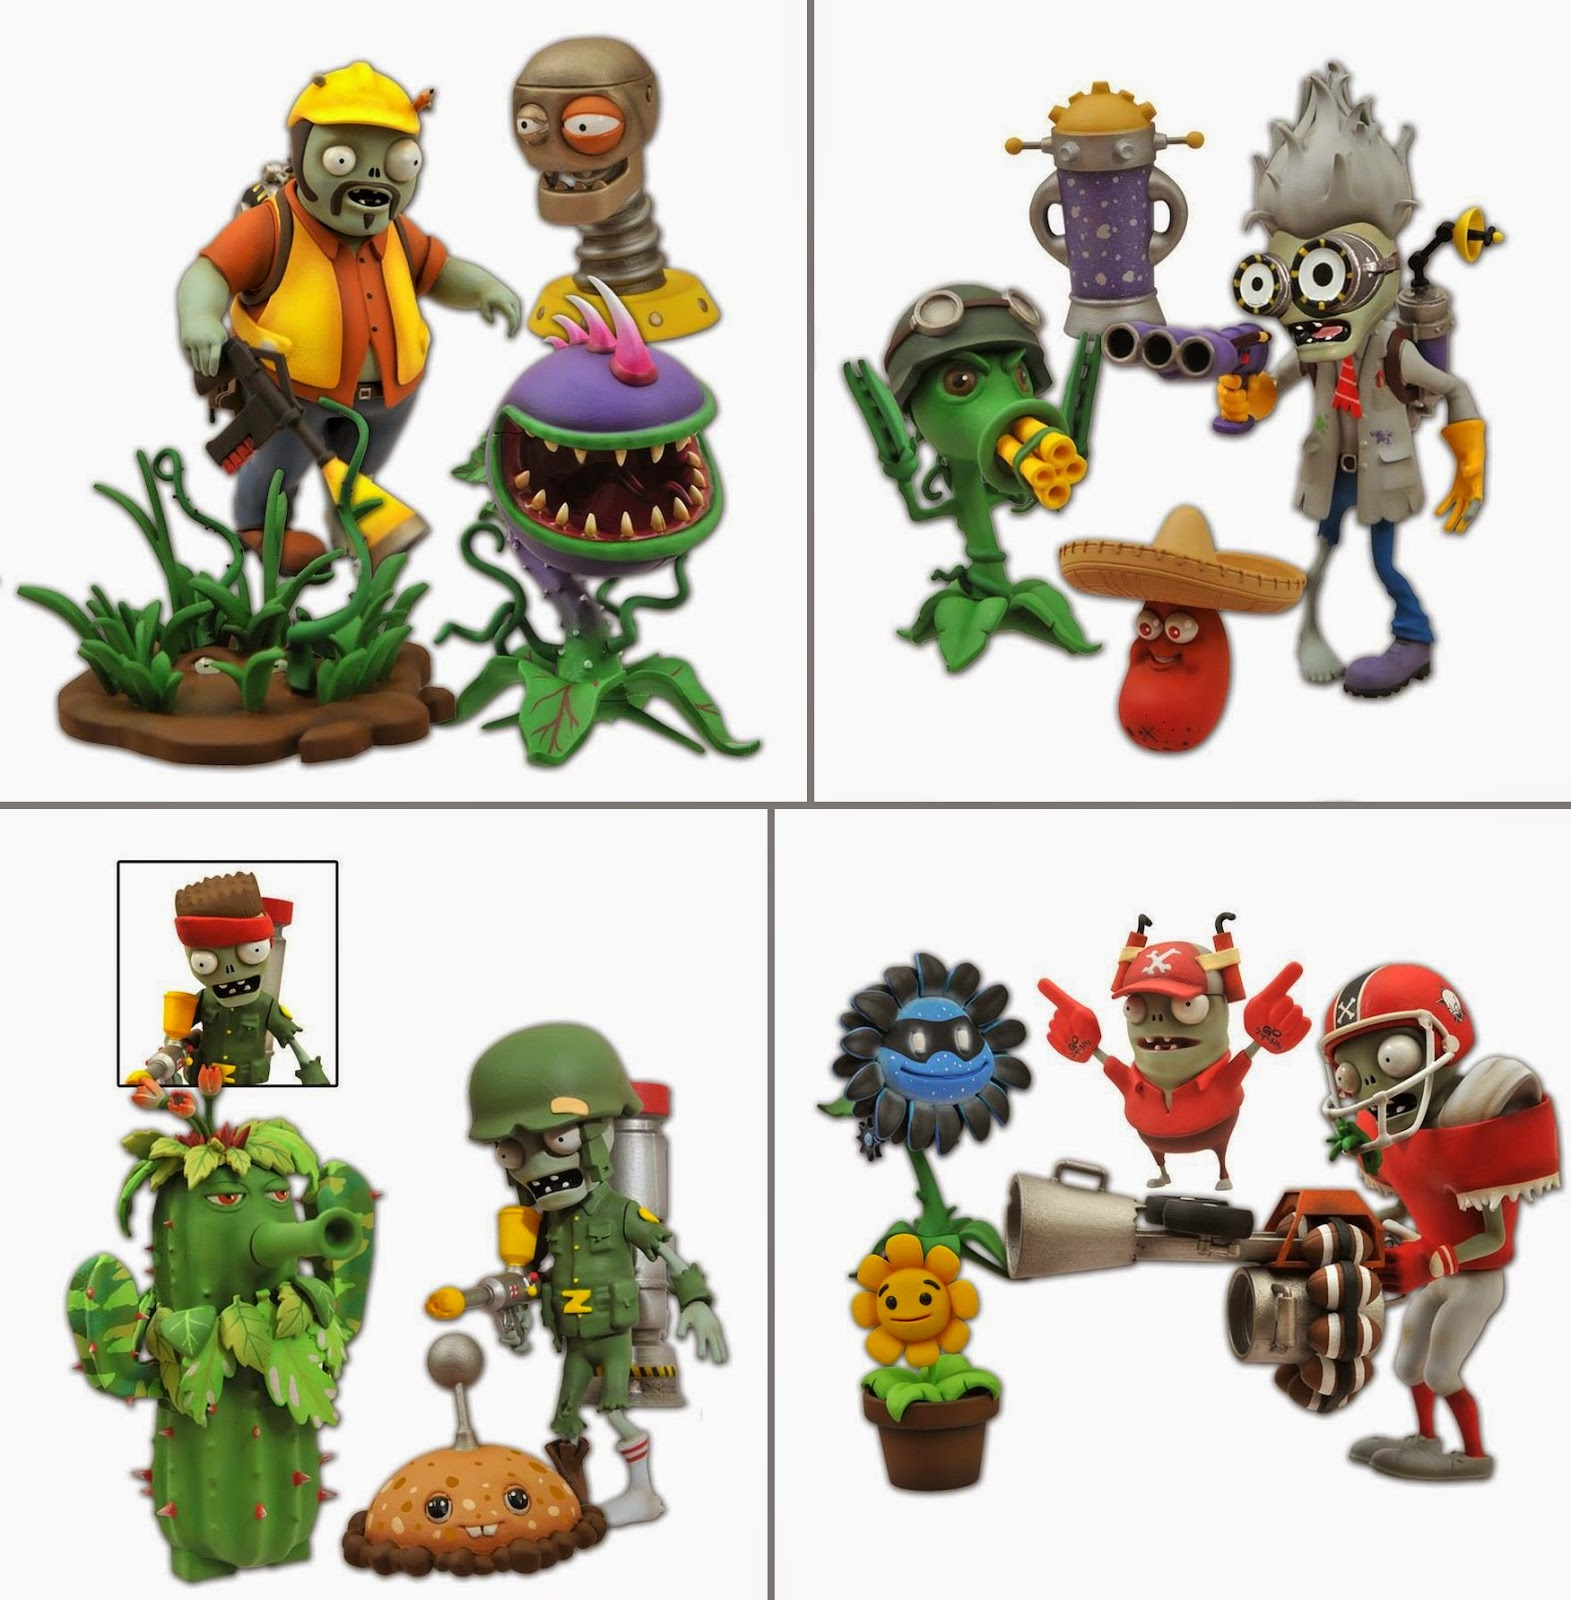 Plants Vs. Zombies: Garden Warfare action figure